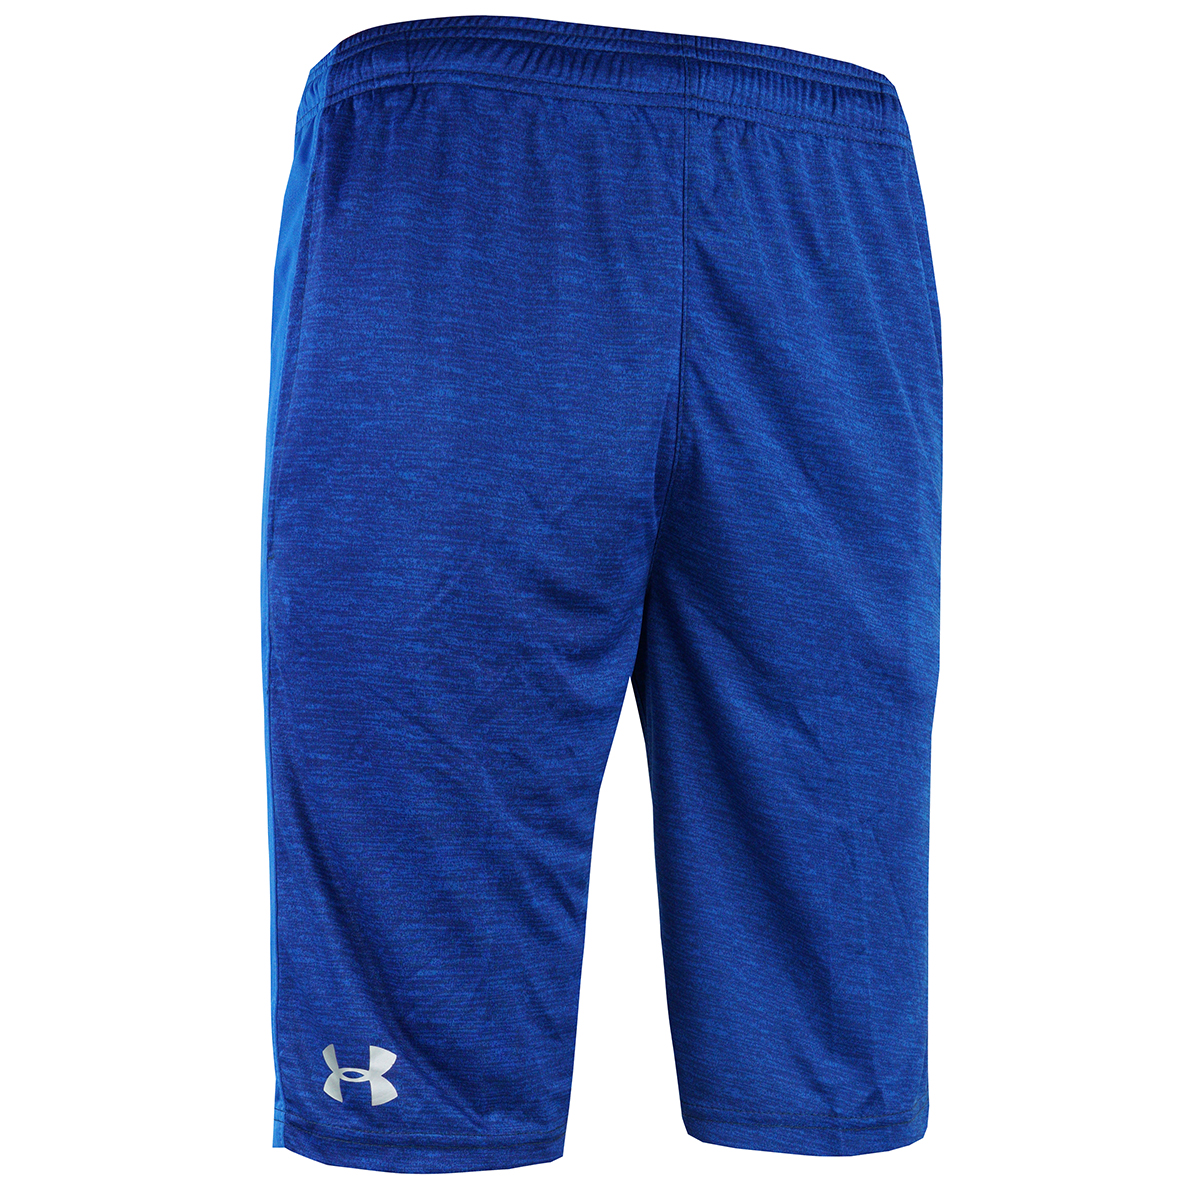 Under-Armour-Men-039-s-Woven-Graphic-Shorts thumbnail 9